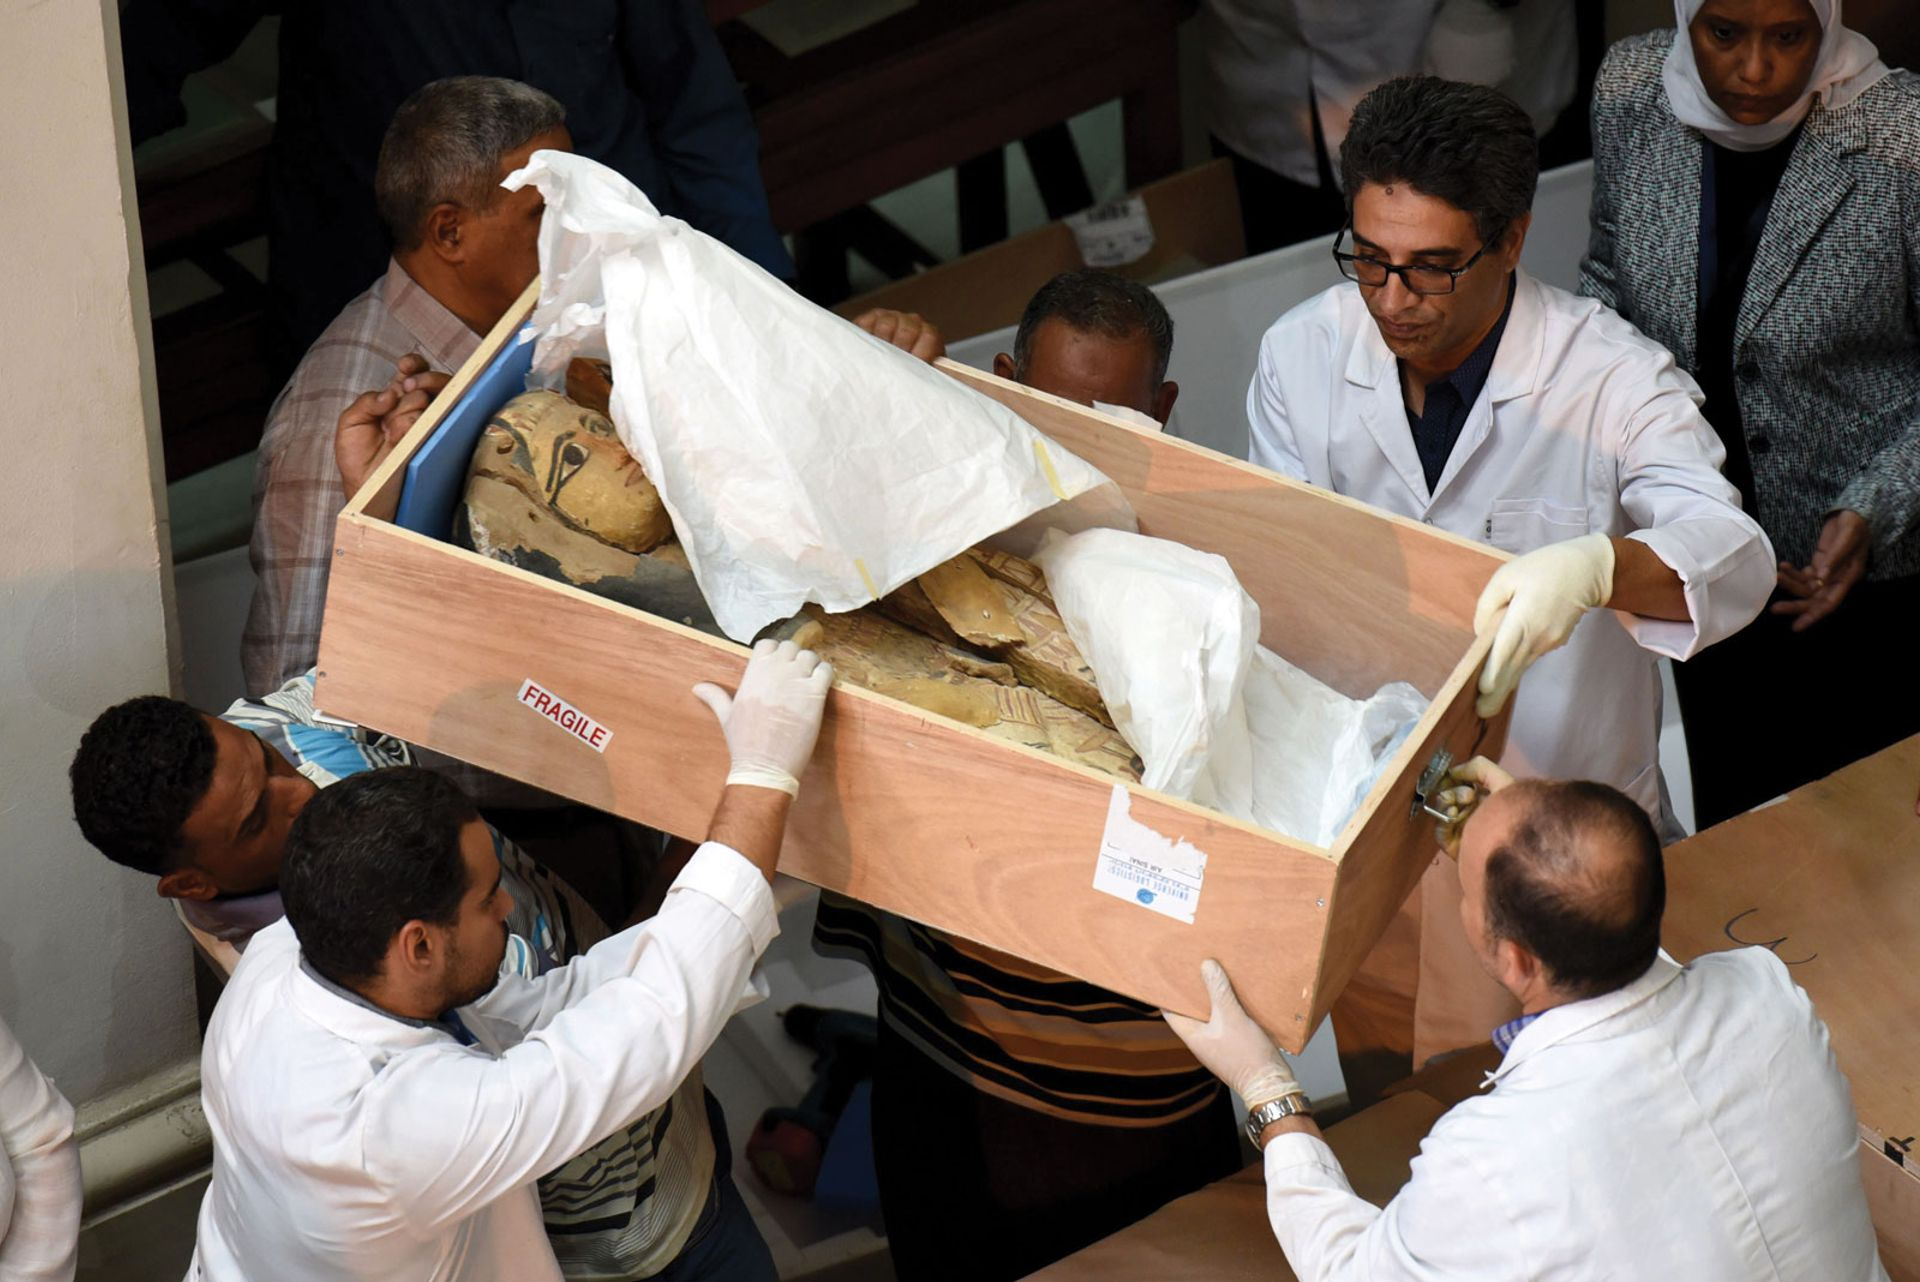 Egyptian museum staff with a sarcophagus repatriated by the Israeli government in 2016 after discovering it had been looted MOHAMED EL-SHAHED/AFP/Getty Images